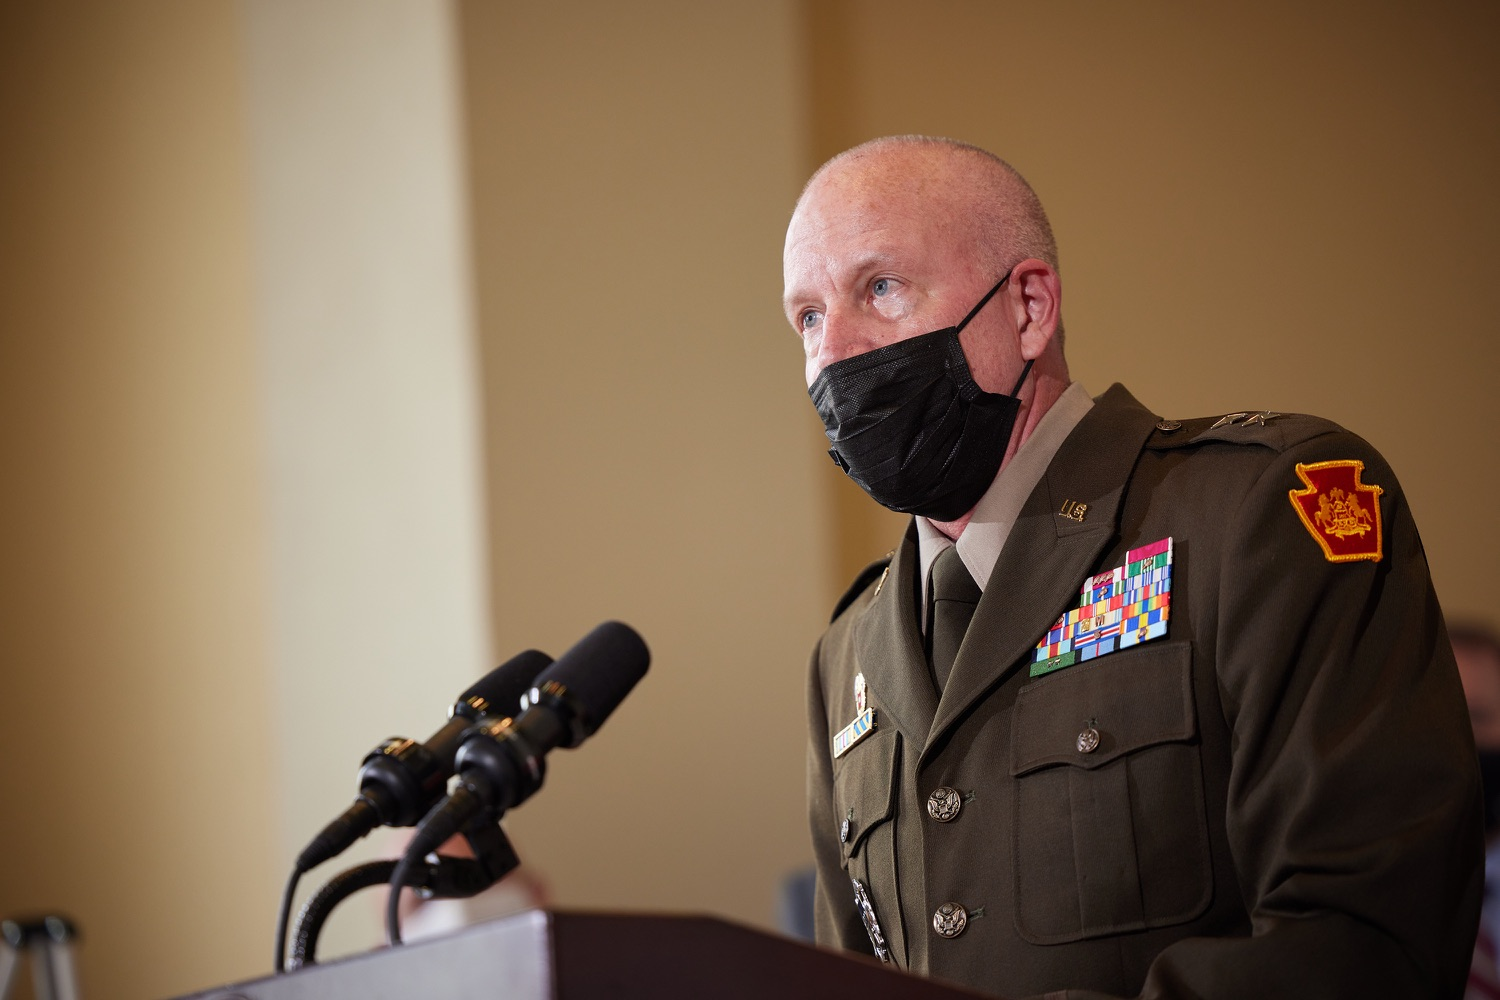 """<a href=""""https://filesource.wostreaming.net/commonwealthofpa/photo/19088_dmva_suicidePrevention_dz_002.jpg"""" target=""""_blank"""">⇣Download Photo<br></a>Adjutant General of Pennsylvania Major General Mark J. Schindler speaks to the press.  Members of the Wolf administration gathered today at the YWCA Greater  Harrisburg to raise awareness about veteran suicide, a health crisis taking the lives of about 20  veterans a day nationwide. The event was held in recognition of September being National Suicide Prevention Month.  Harrisburg, PA   Sept. 9, 2021.."""